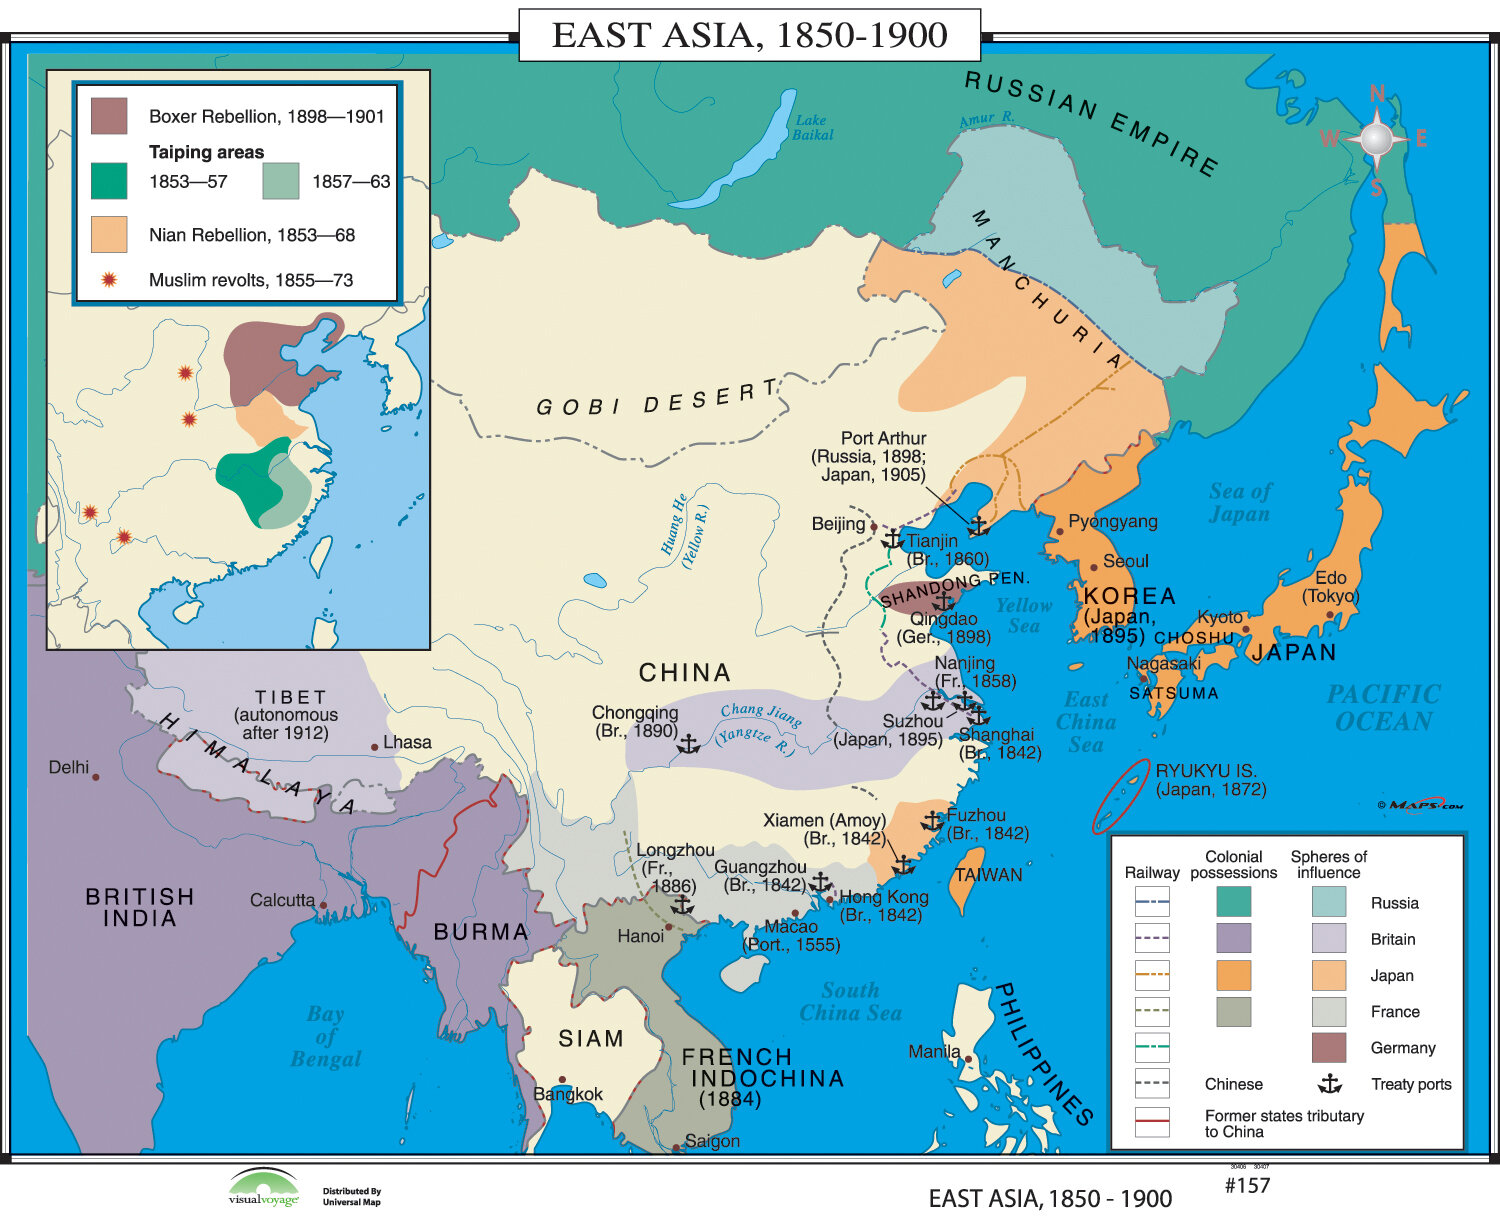 Universal Map World History Wall Maps - East Asia 1850-1900 | Wayfair.ca